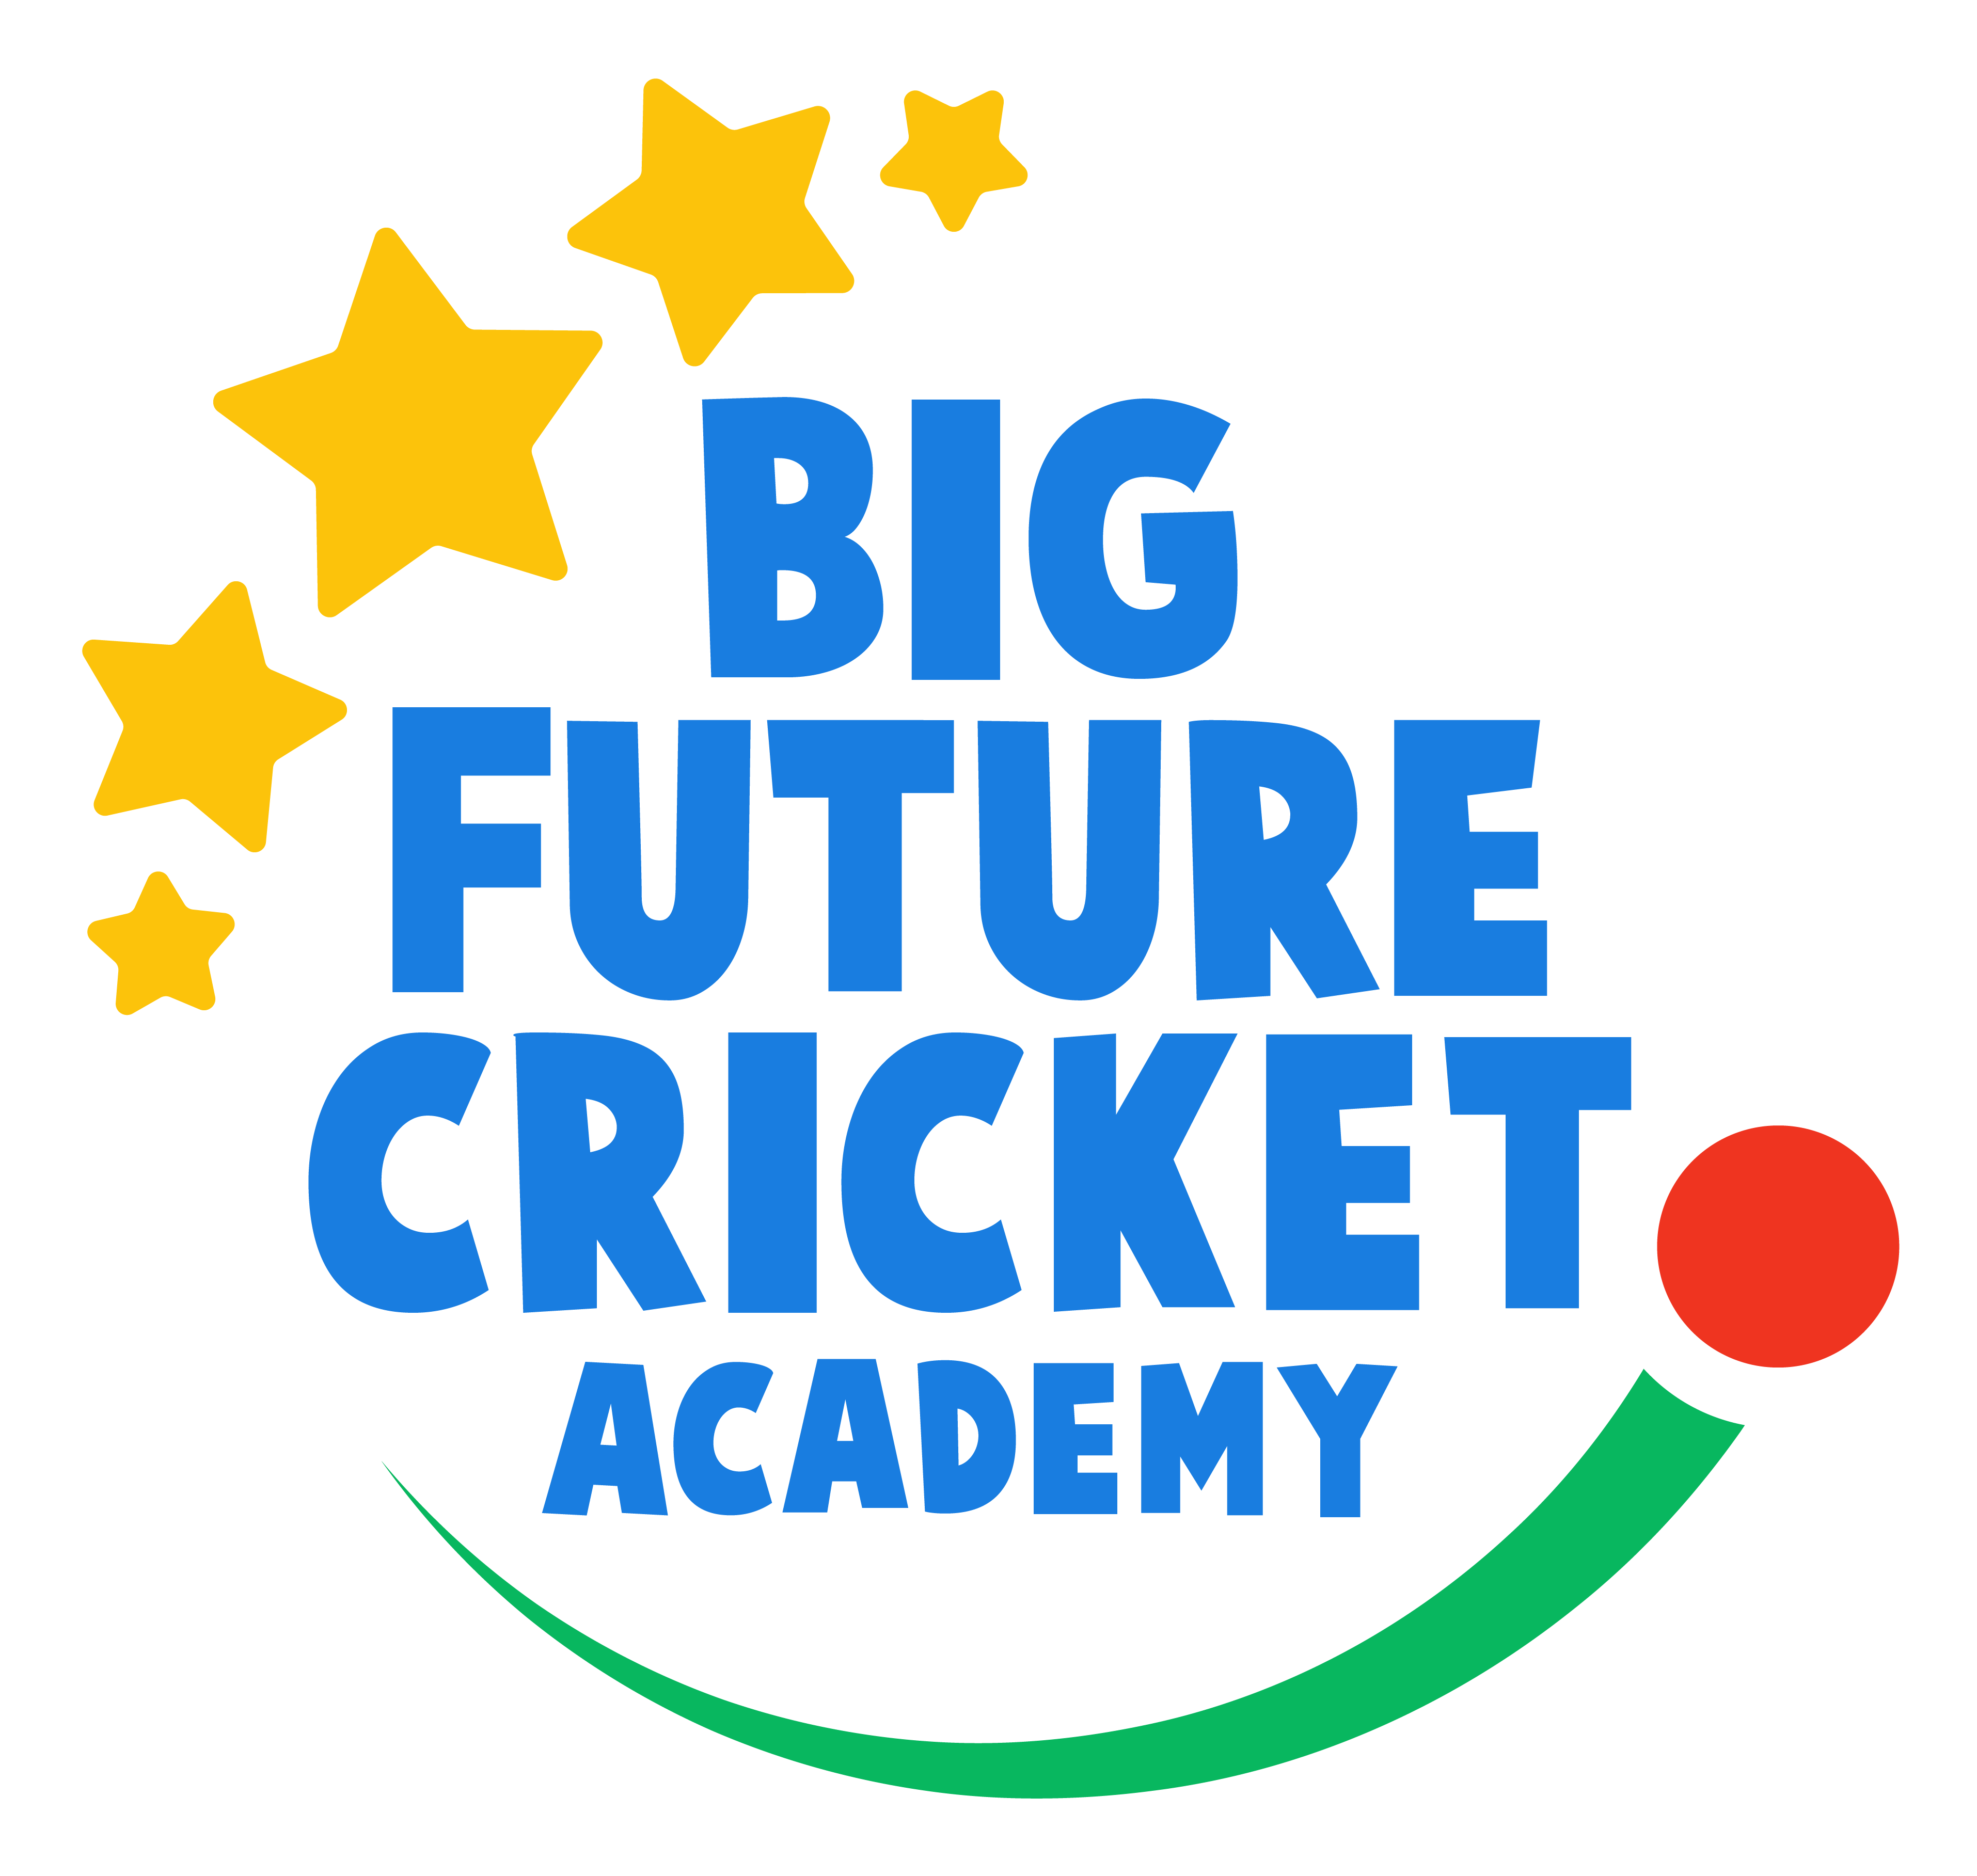 Big Future Cricket Academy